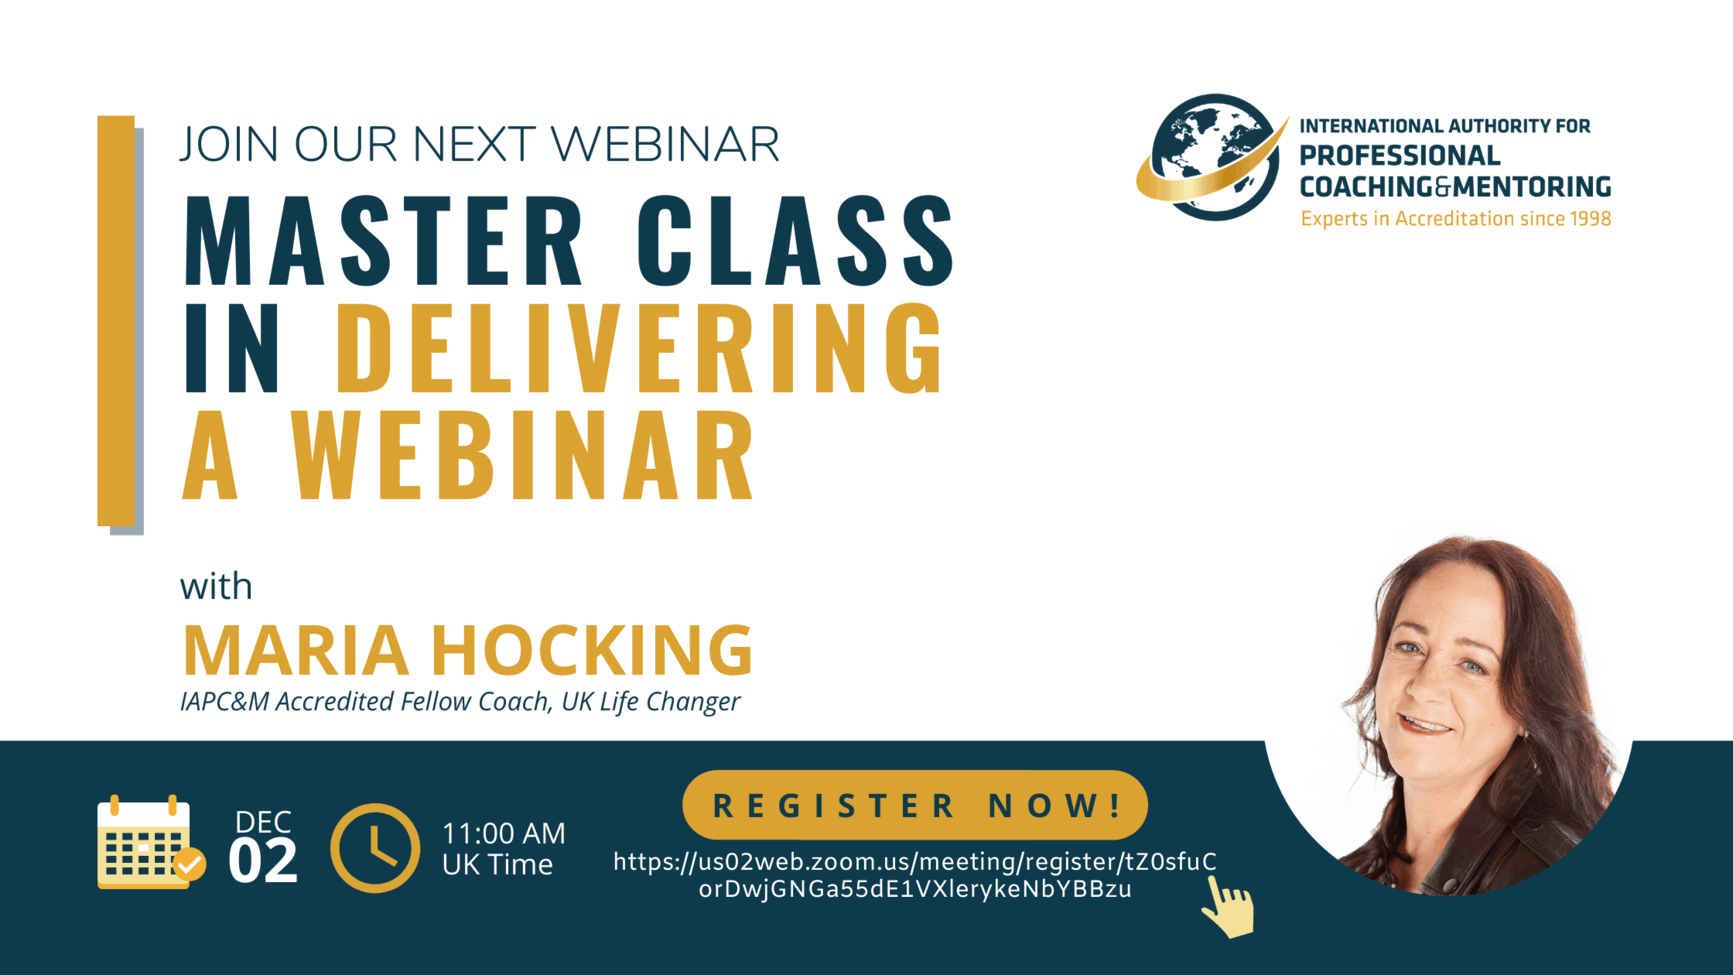 Master Class in Delivering a Webinar